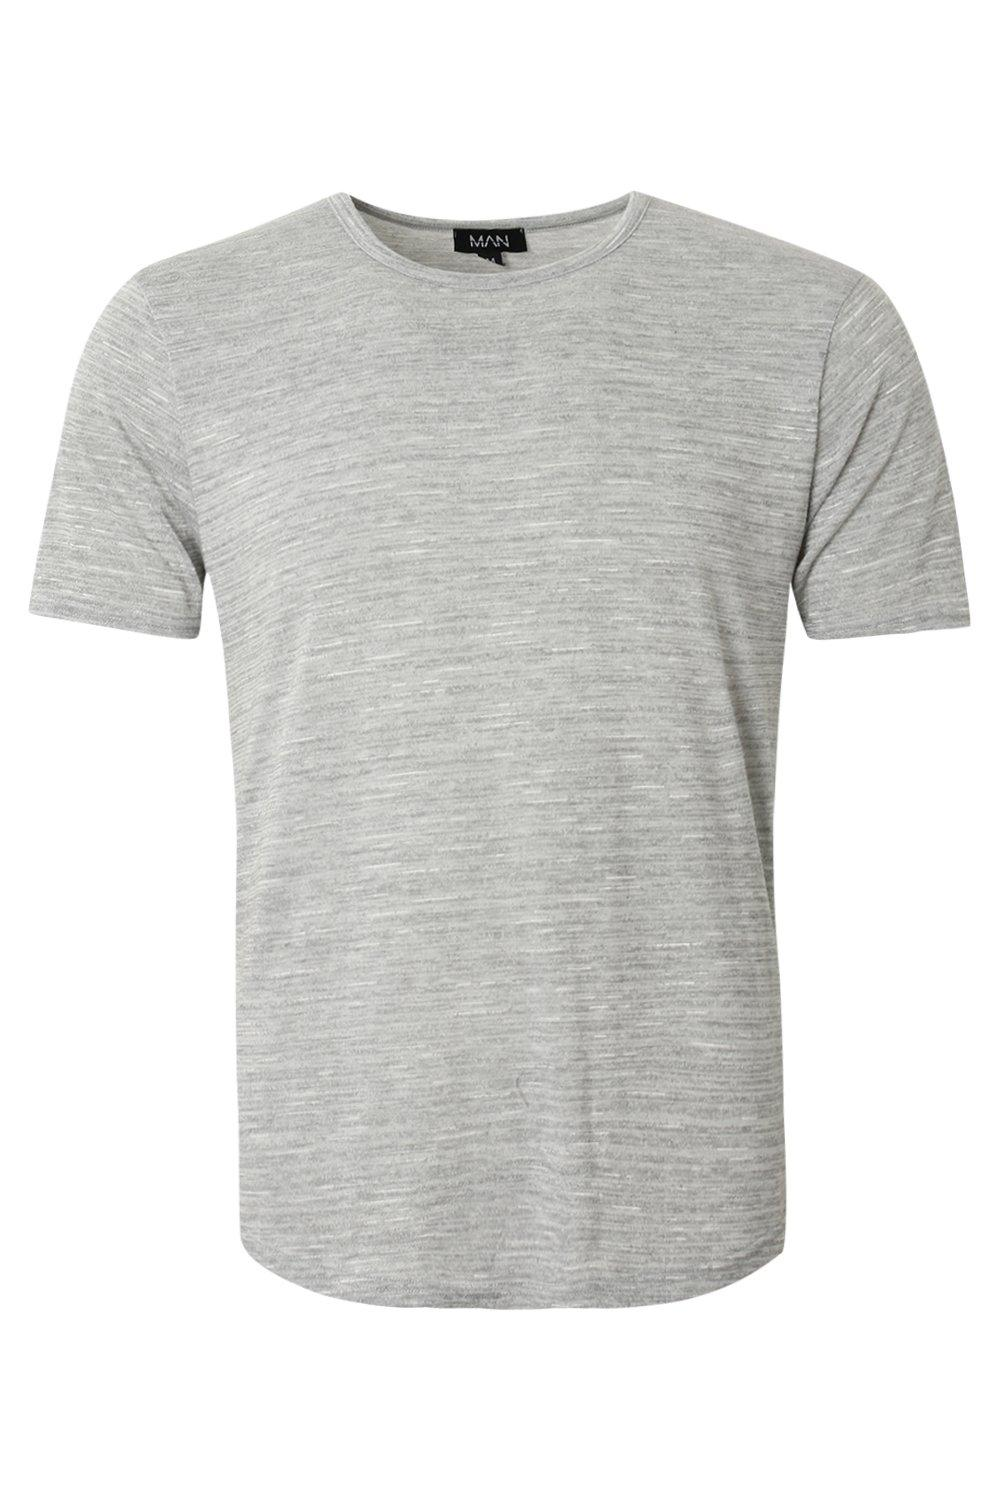 boohooMAN grey Knitted Marl Tee With Curved Hem